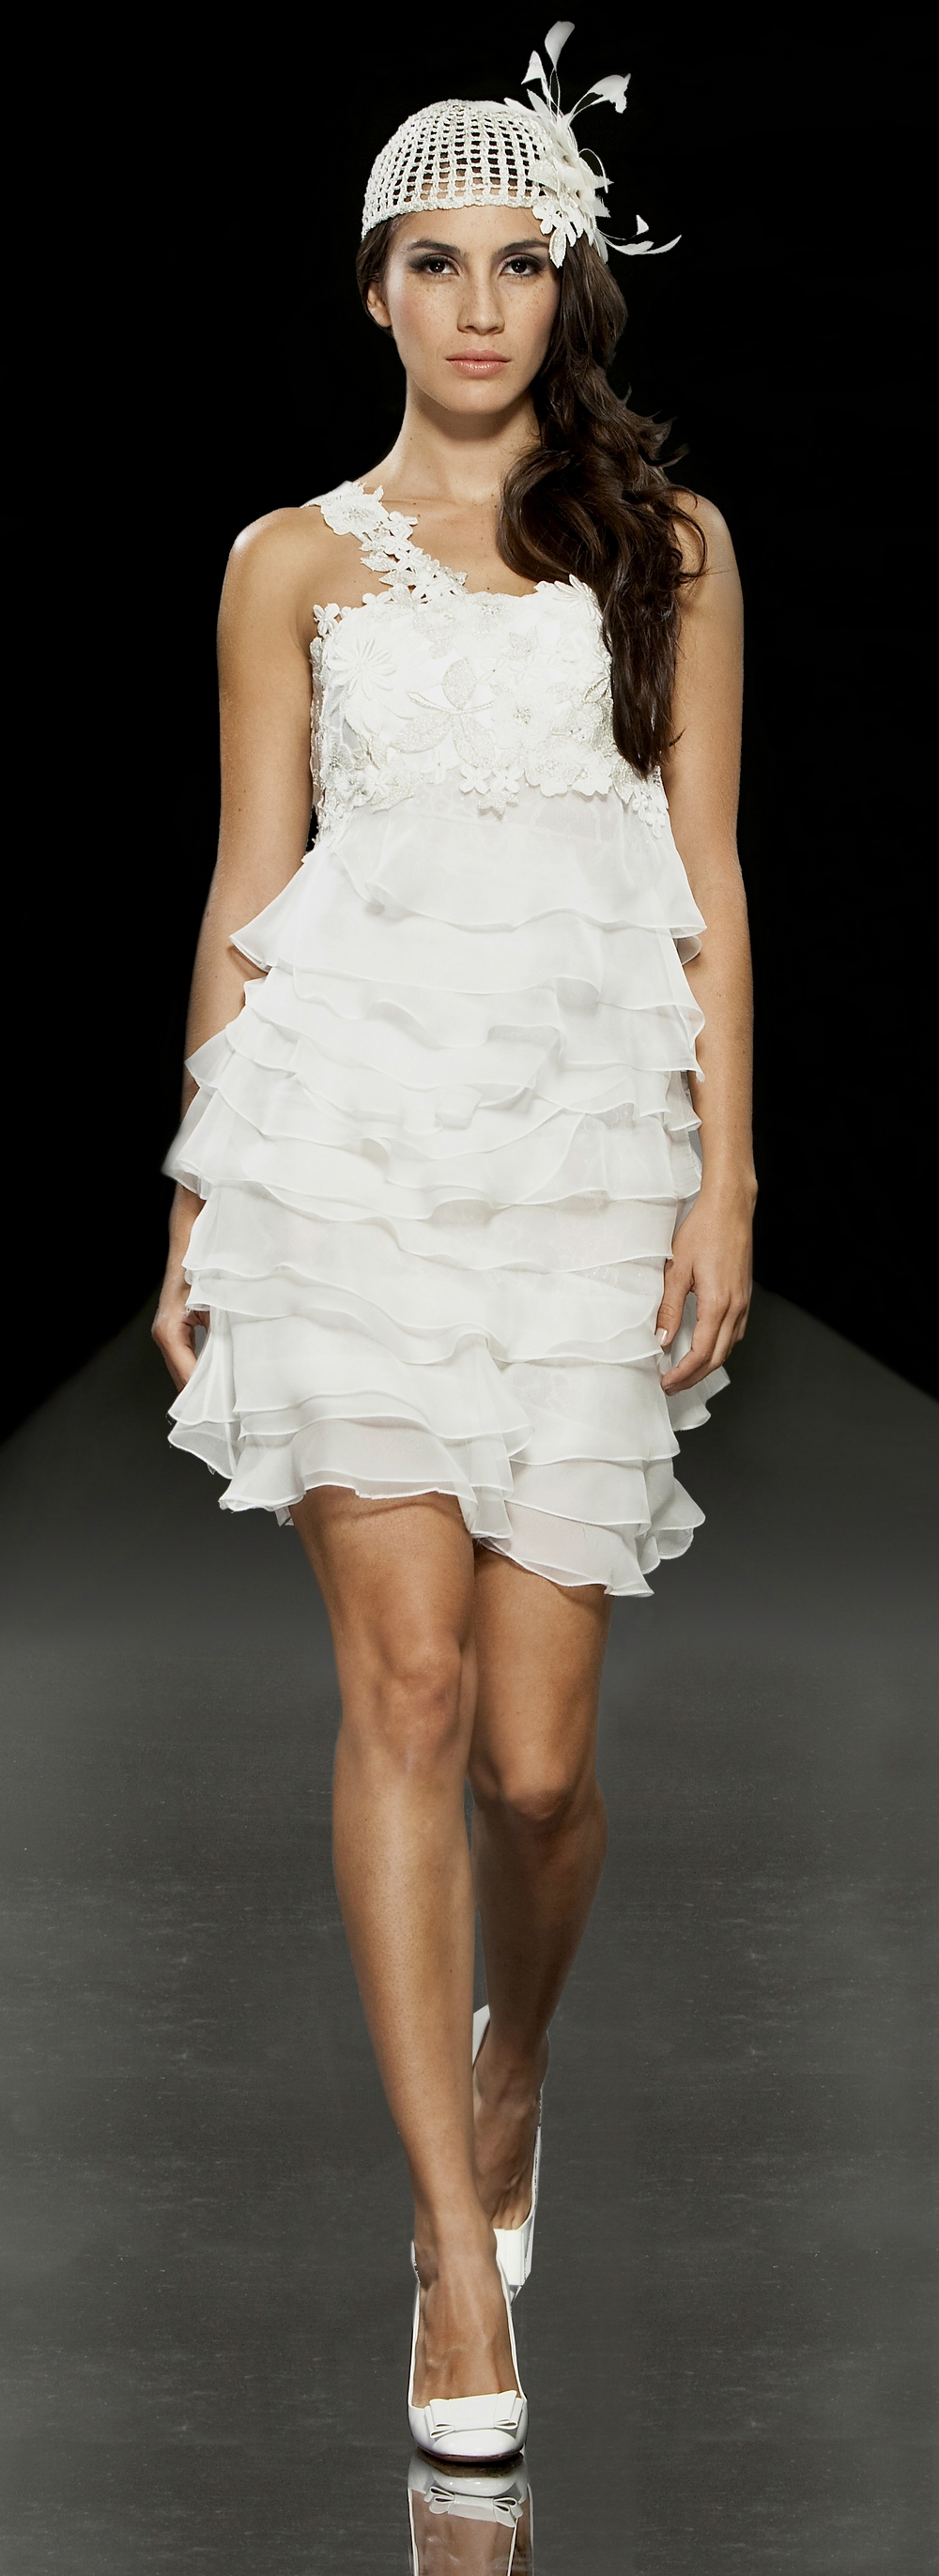 vintage-inspired short wedding dress, perfect for your wedding reception